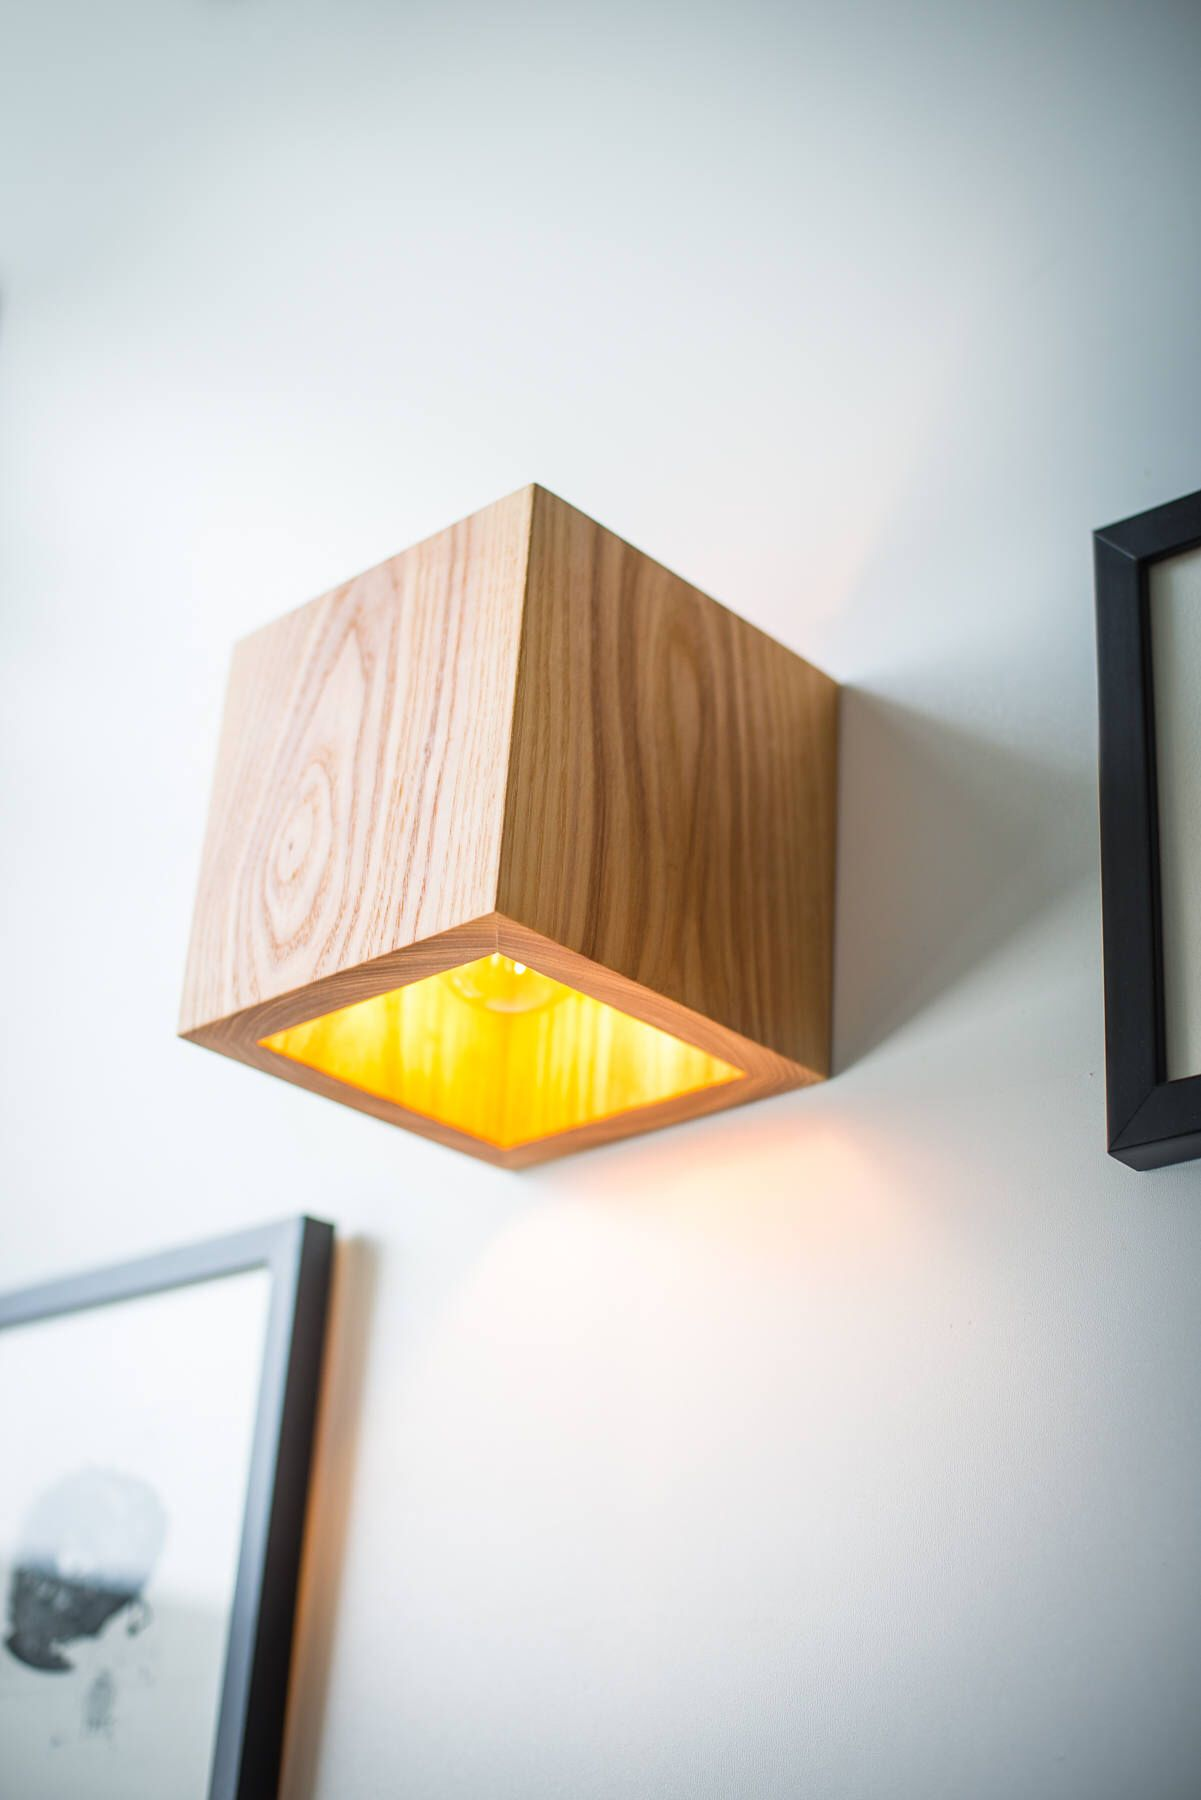 Wood lamp q255 handmade wall lamp wooden lamp sconce wall light wood lamp q255 handmade wall lamp wooden lamp sconce wall light minimalist lamp interior decoration wood decor cube wood sconce aloadofball Images